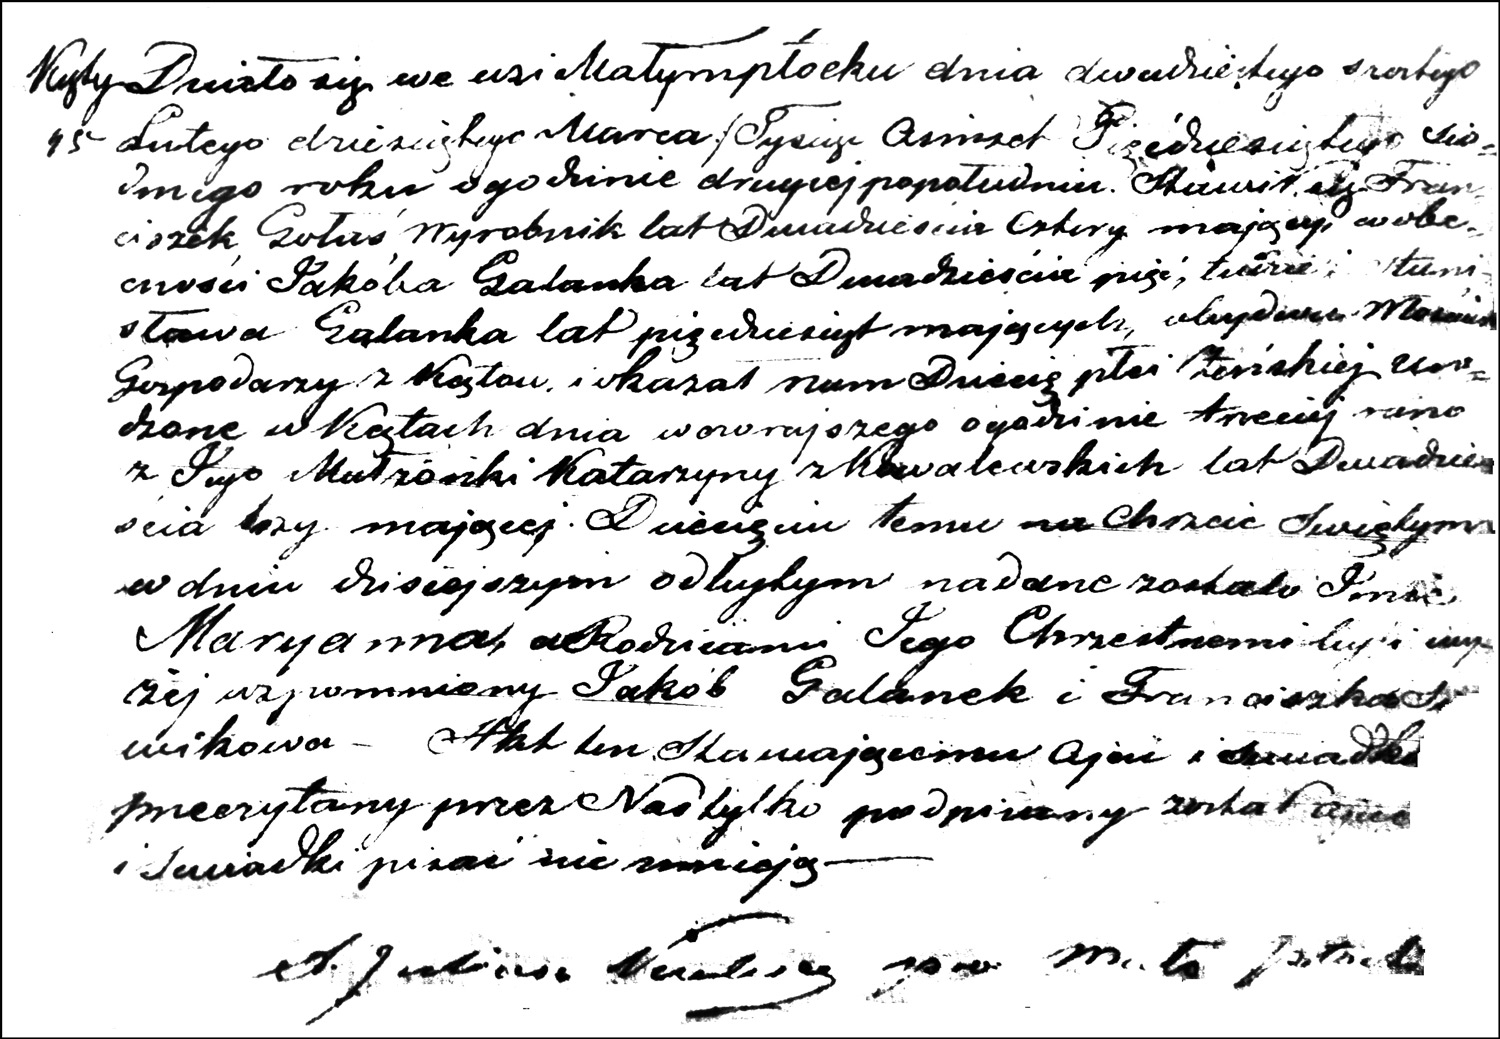 The Birth and Baptismal Record of Maryanna Gołaś - 1857